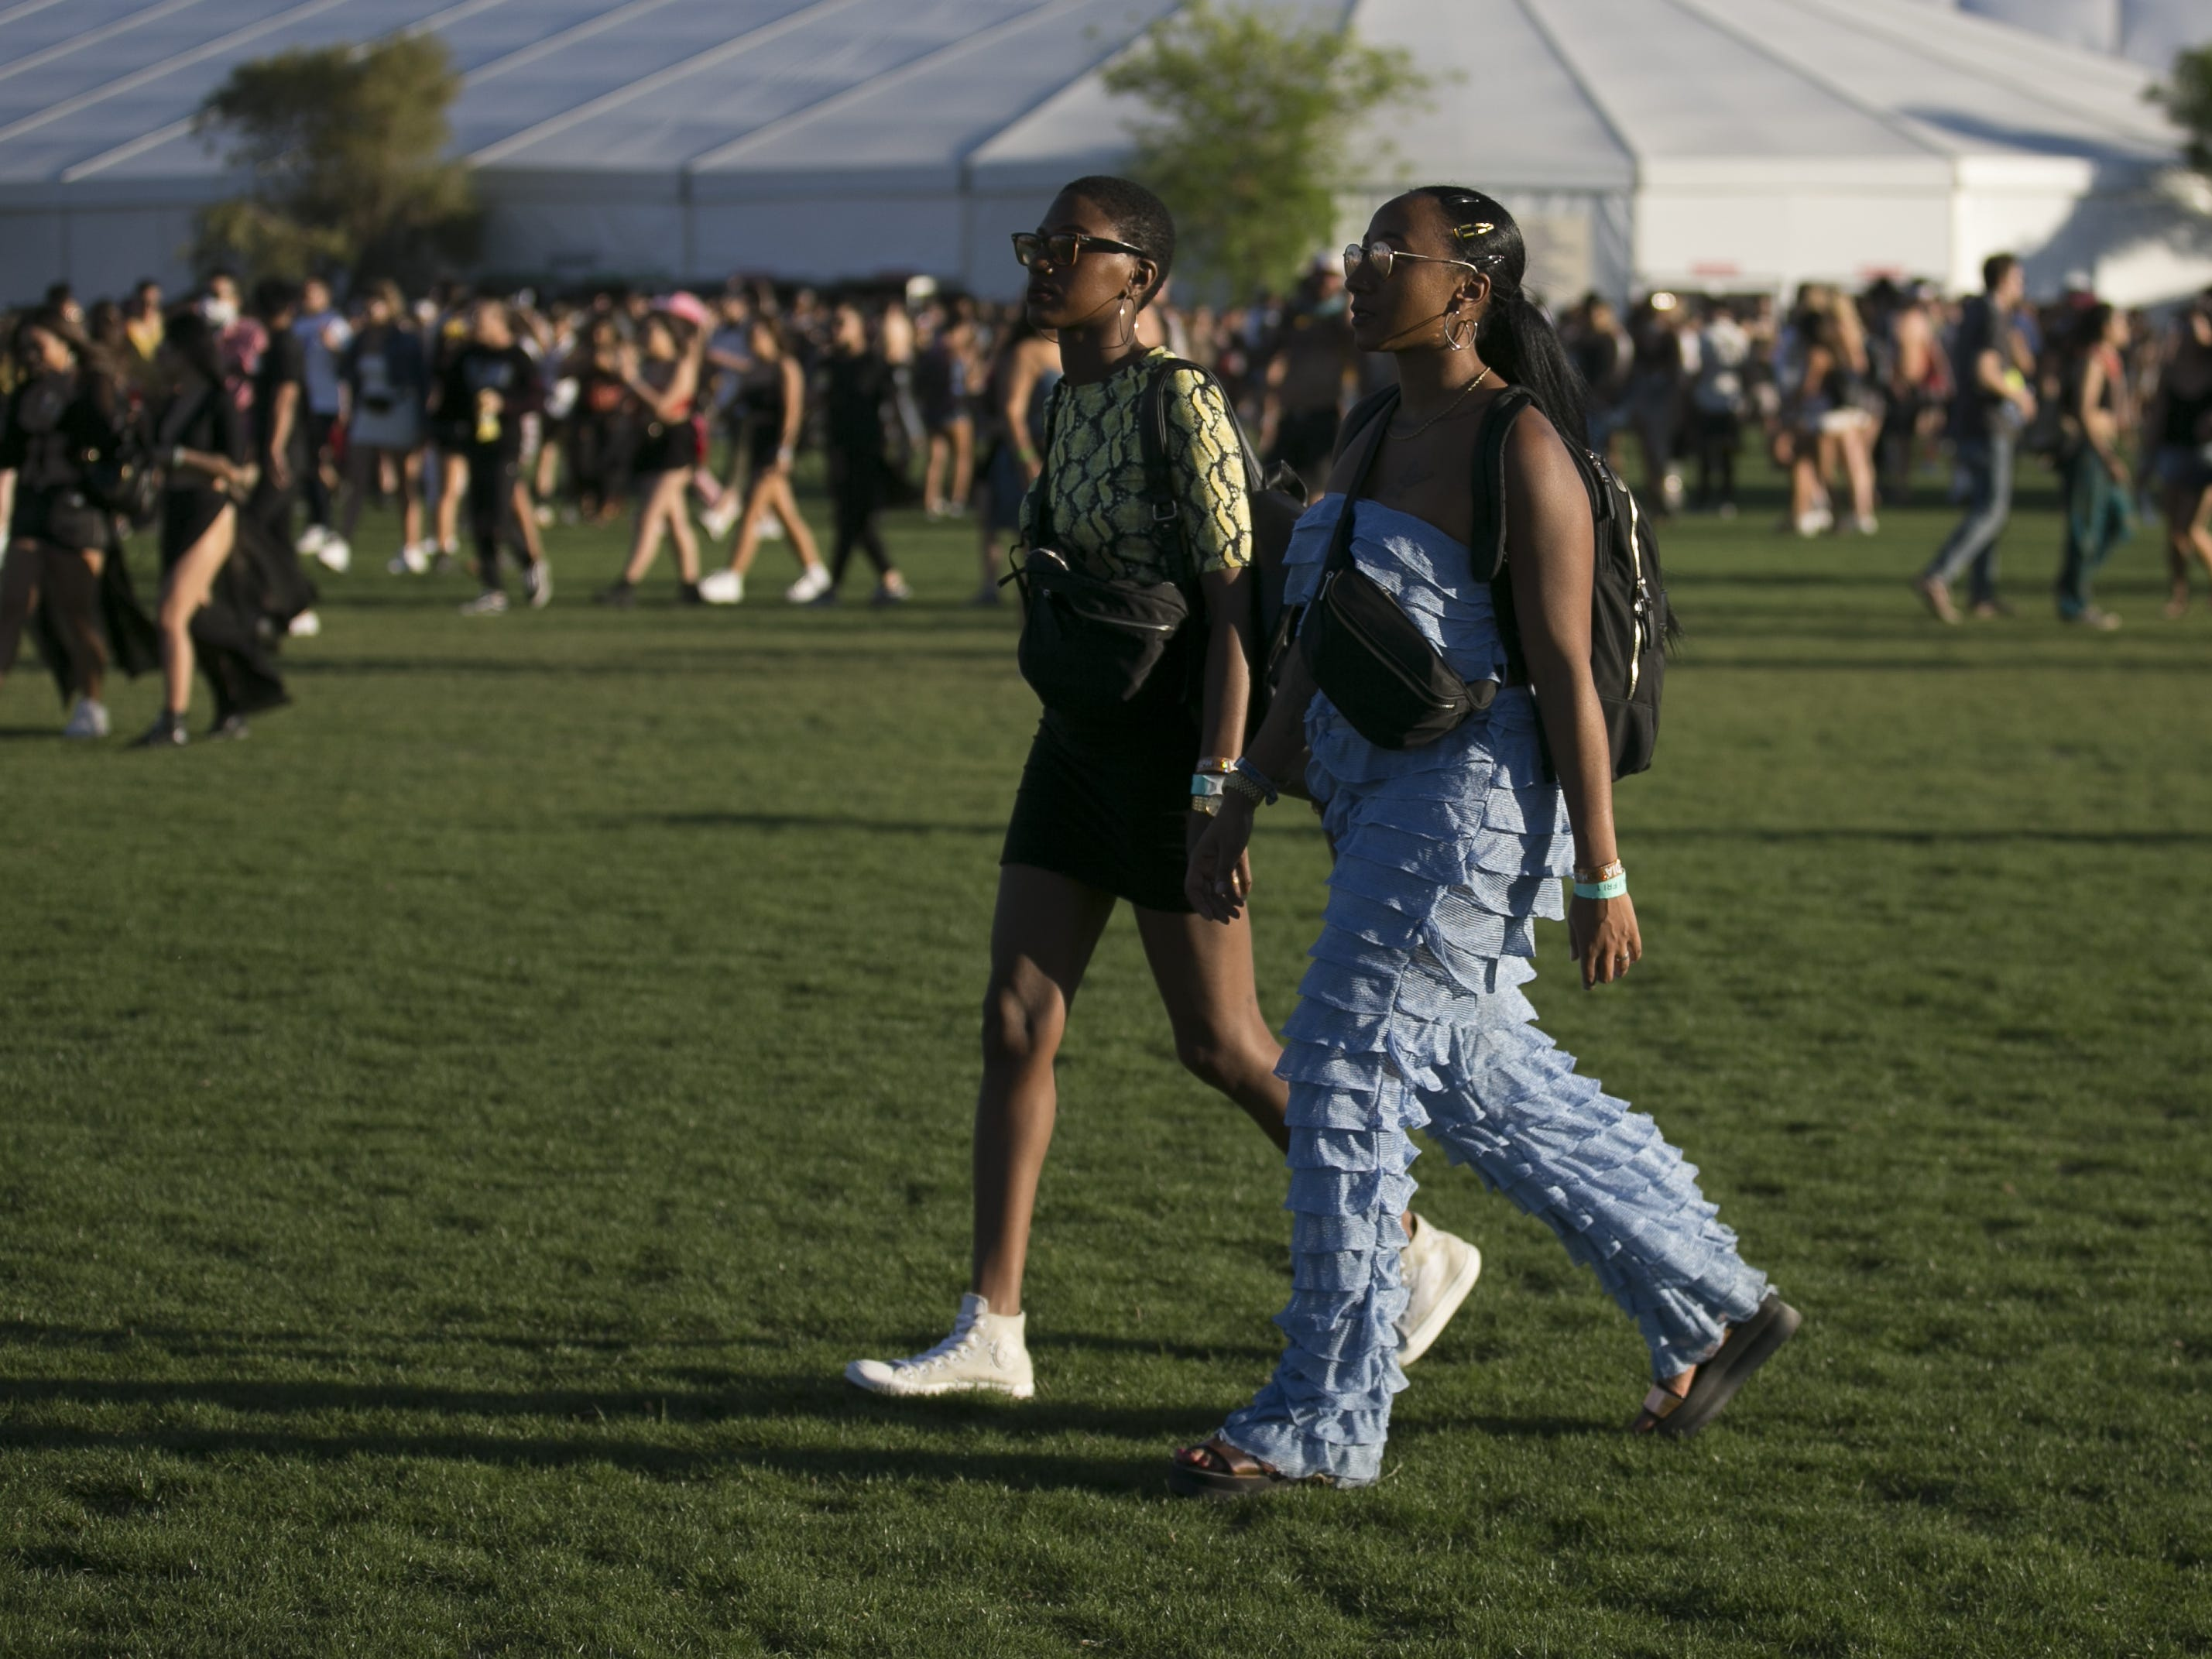 Festival-goers walk through the grounds at the Coachella Valley Music and Arts Festival in Indio, Calif. on April 12, 2019.